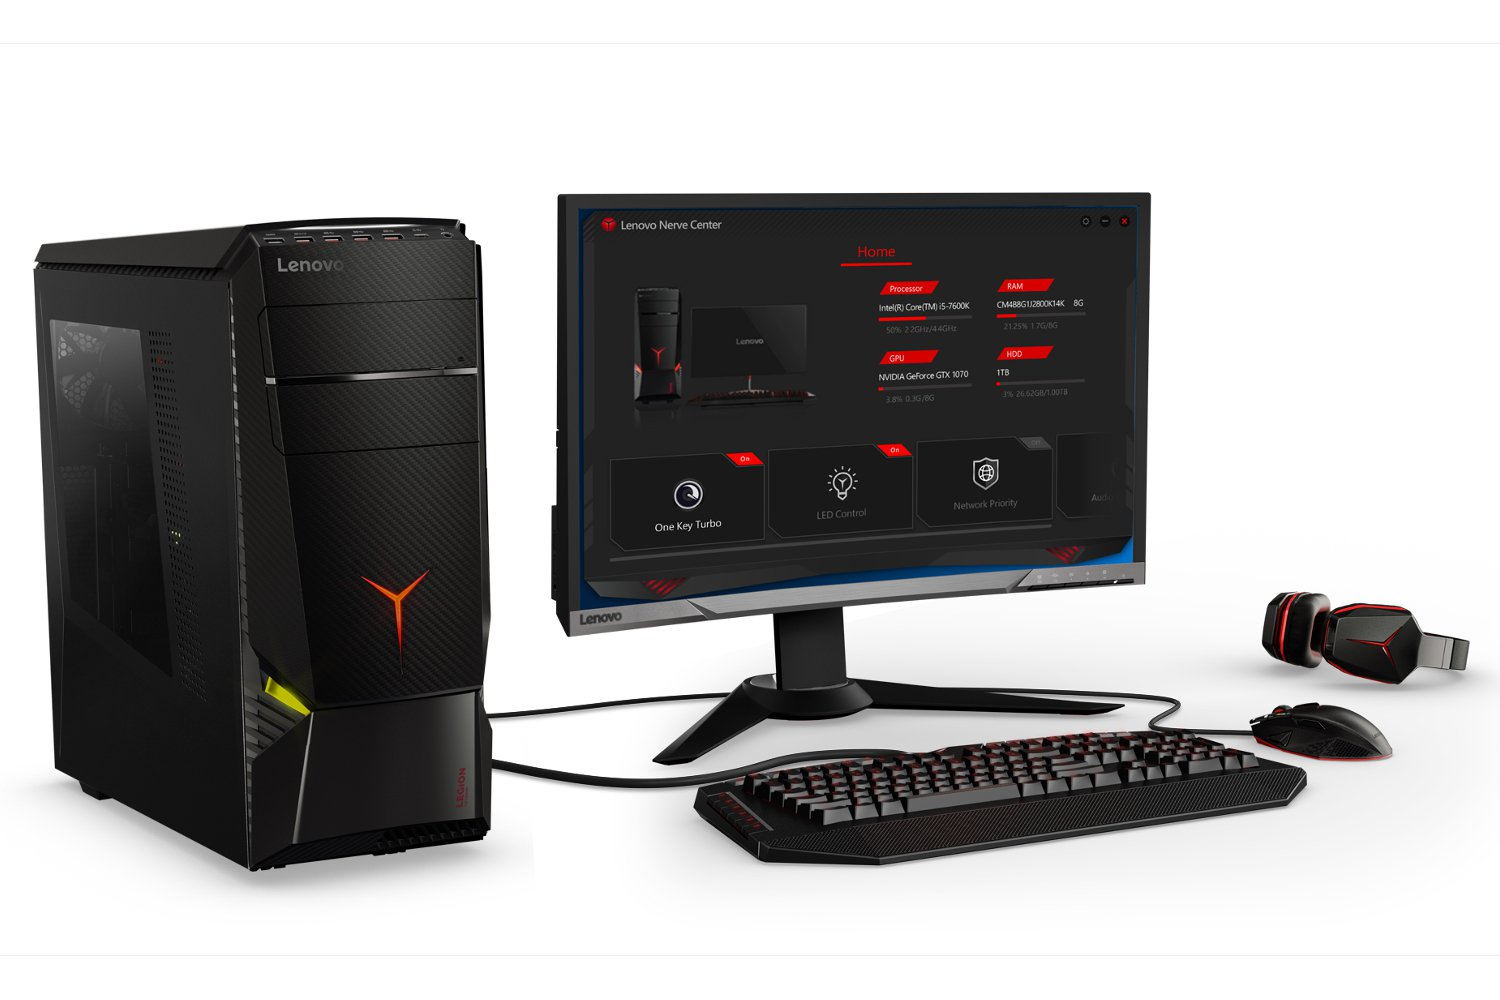 lenovo legion gaming computers from 750 euro 10 photos. Black Bedroom Furniture Sets. Home Design Ideas